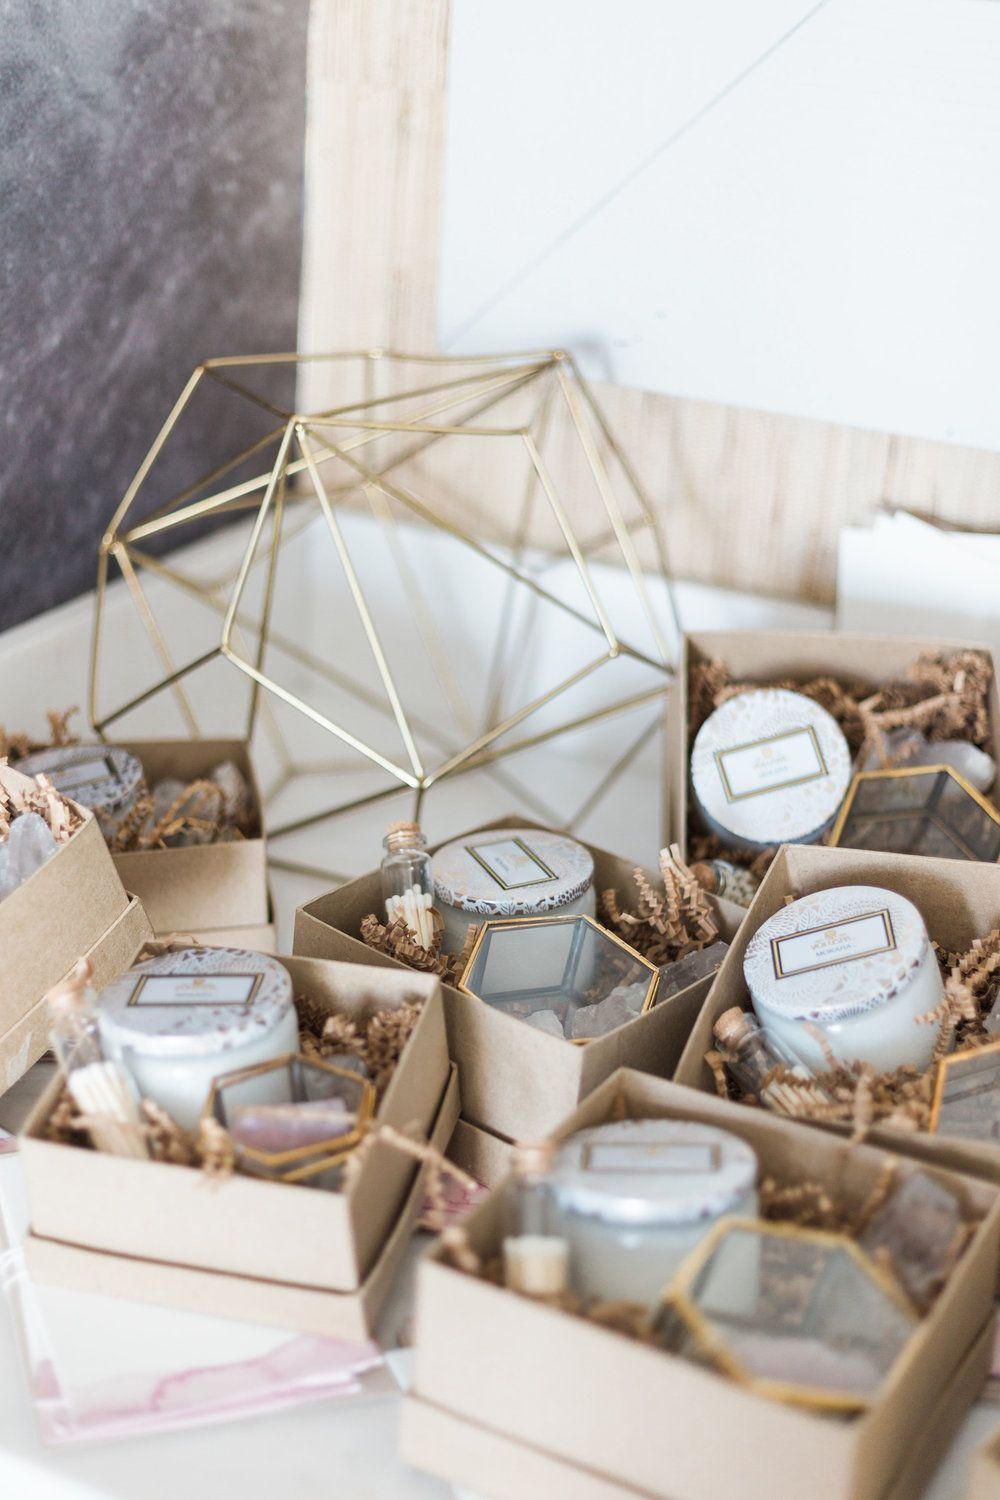 Party favors included Voluspa candles, mini match bottles, brass ...